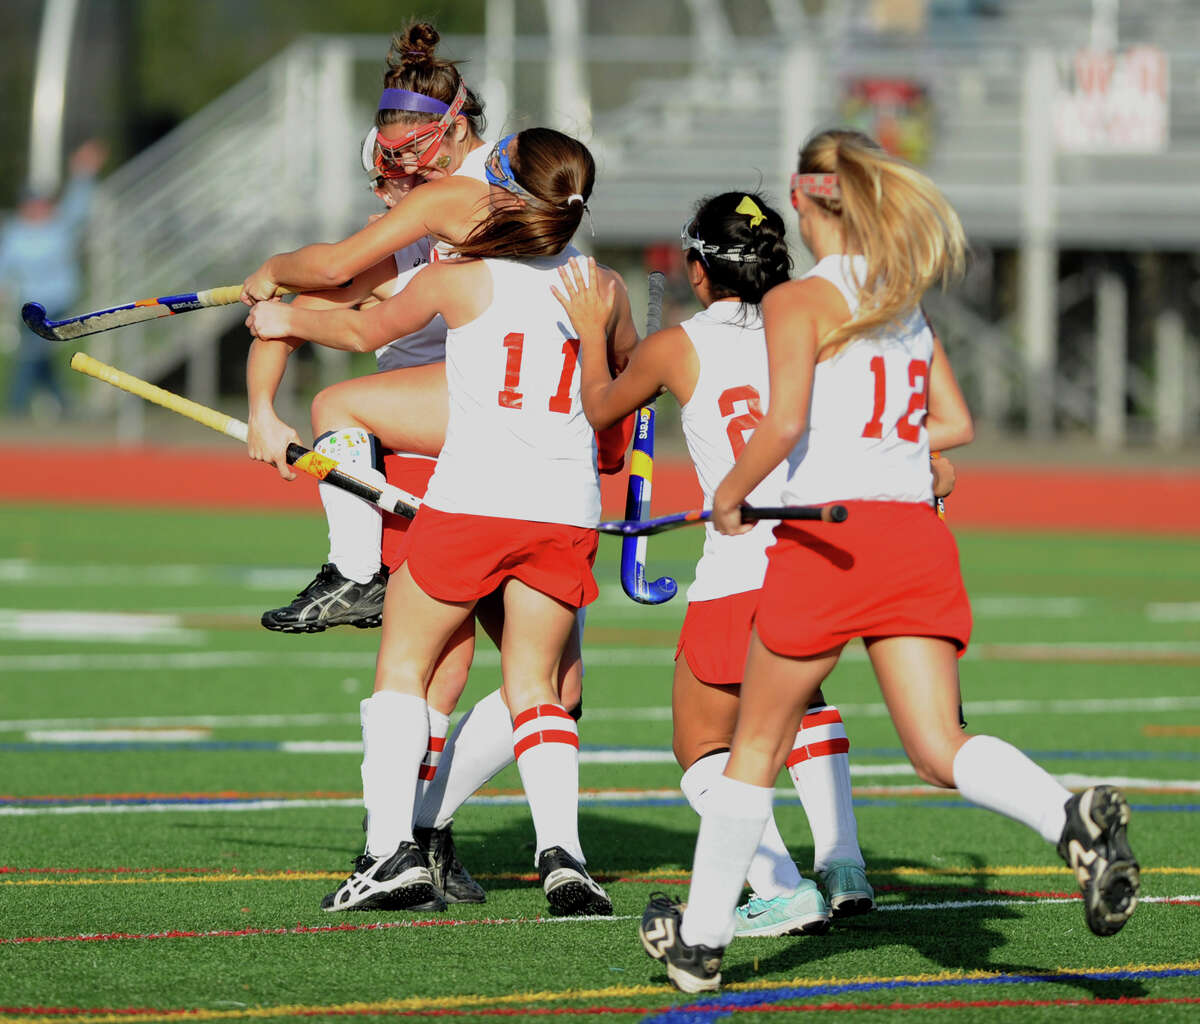 Niskayuna players celebrate after they score a goal during a section 2 Class A regional field hockey game against Suffern on Monday, Nov. 12, 2012 in Schuylerville, N.Y. (Lori Van Buren / Times Union)